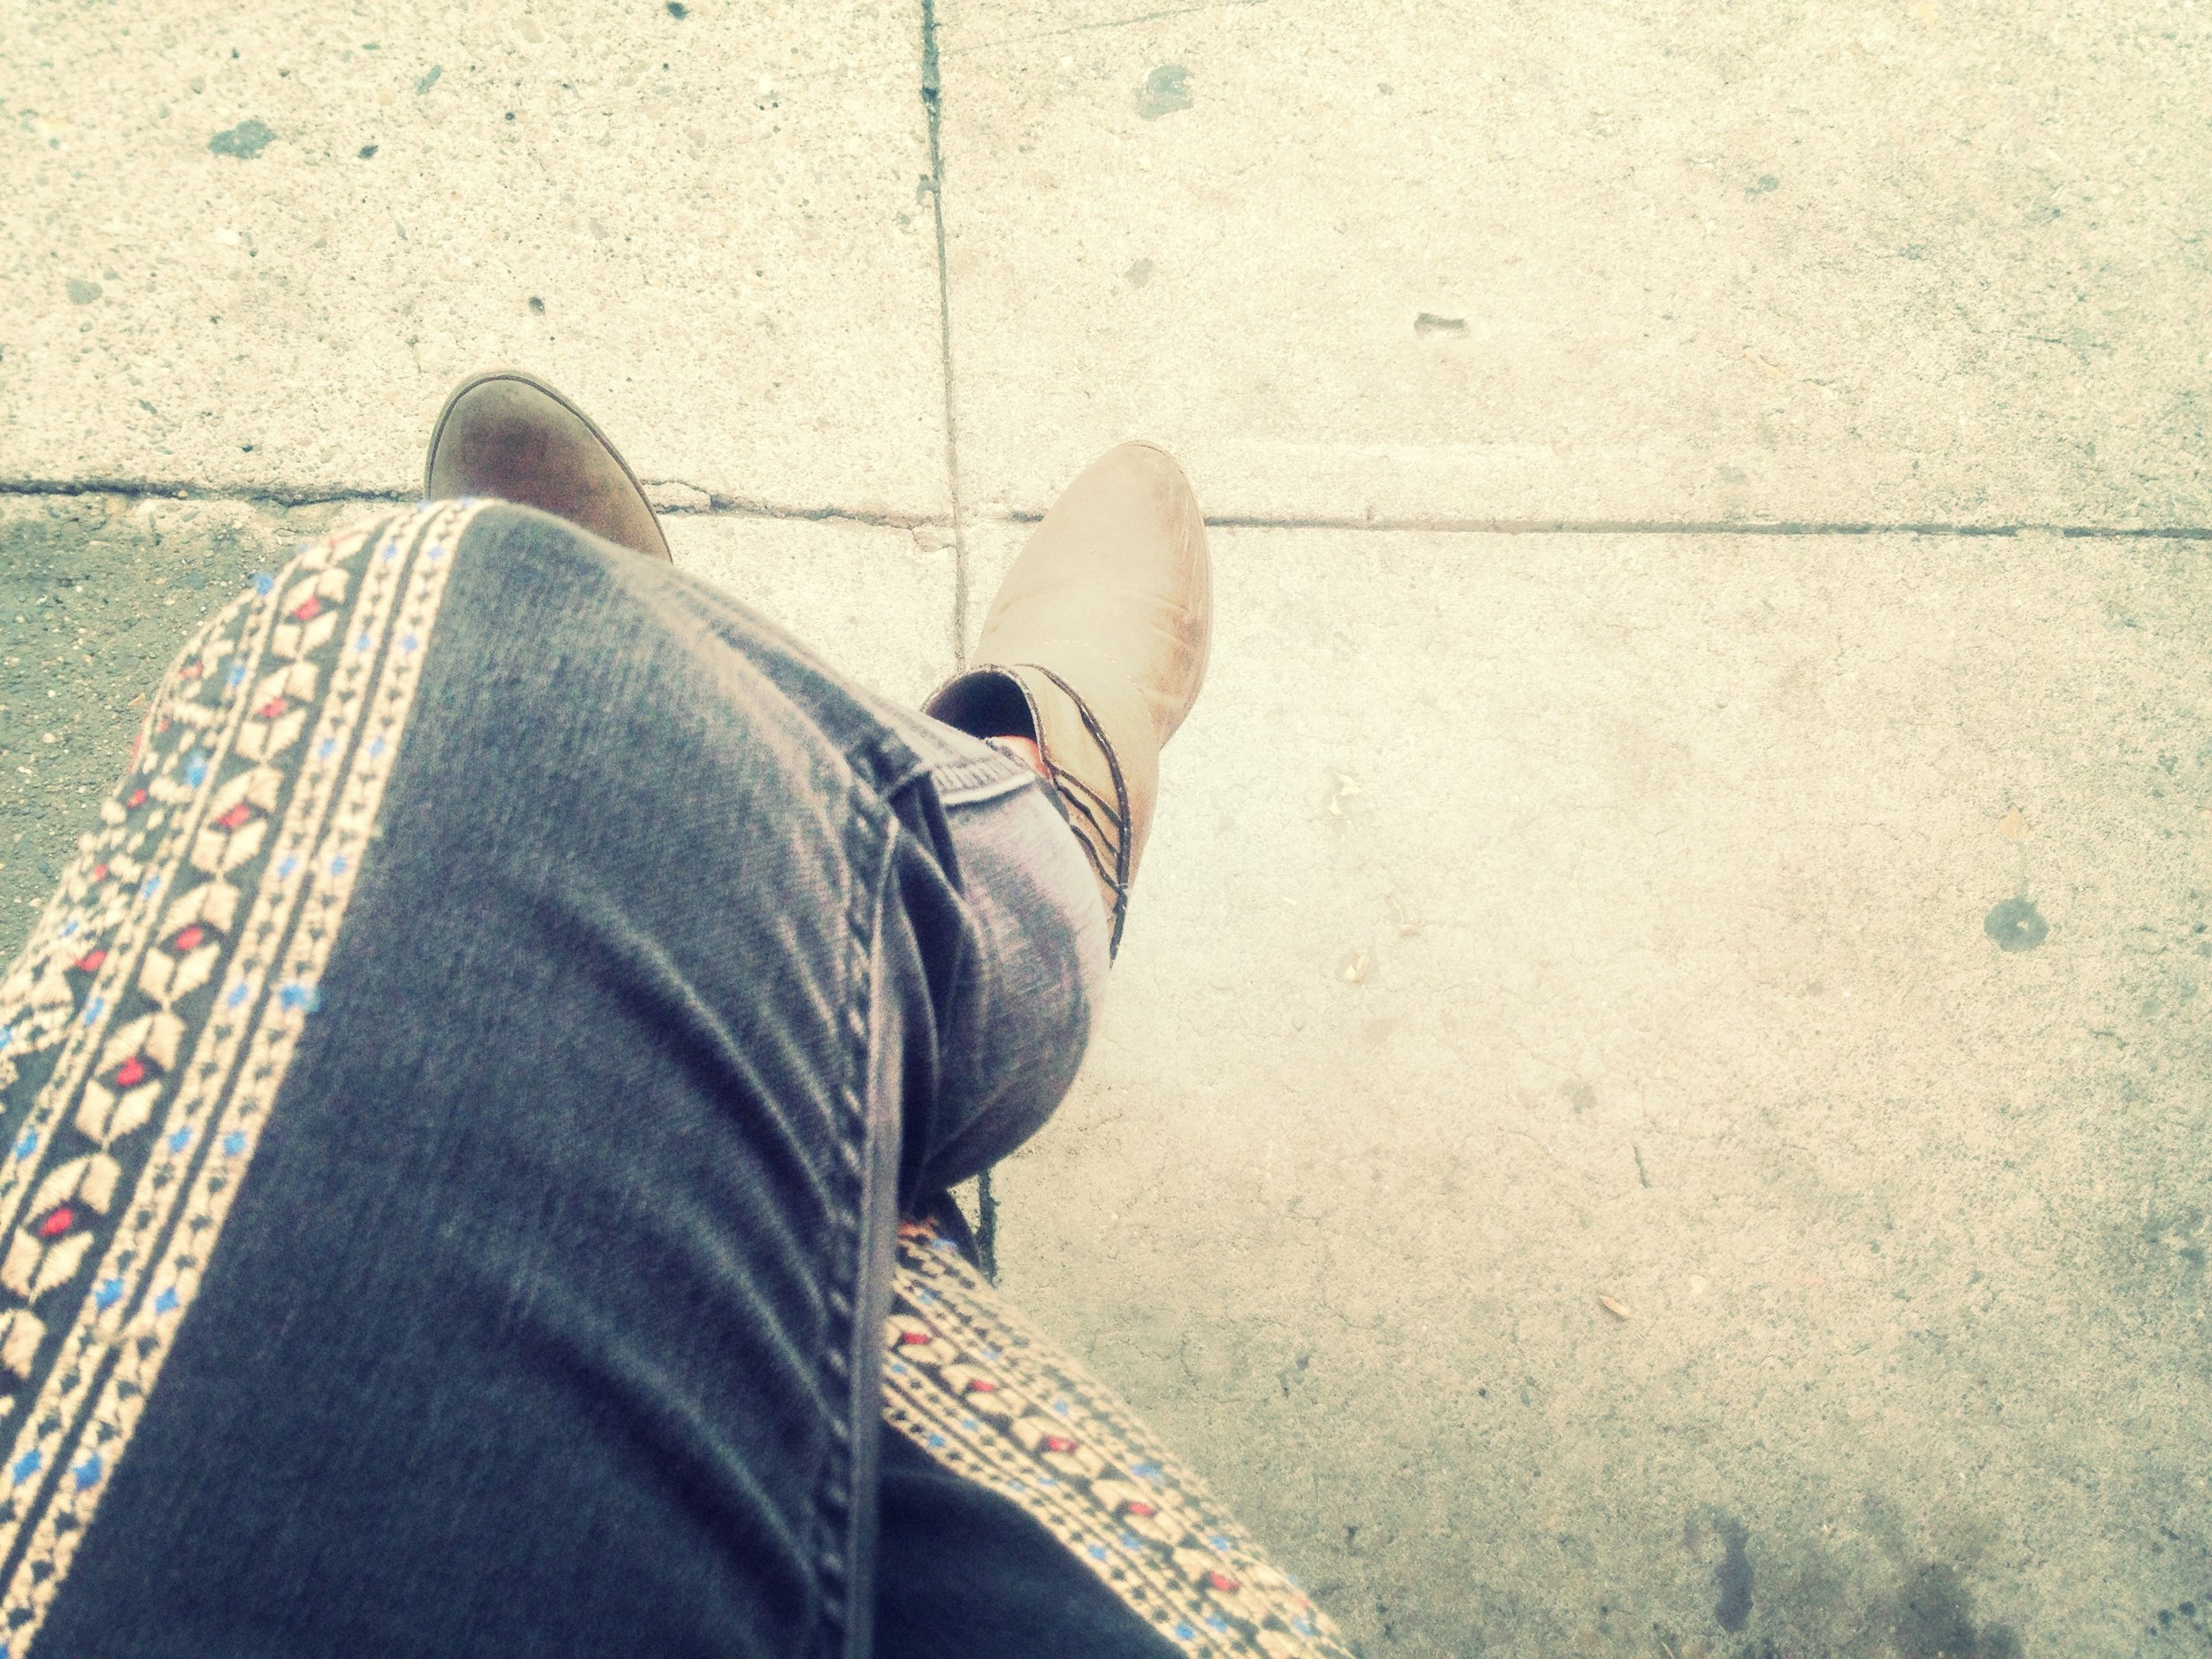 My weekend outfit go-to: Embroidered denim and boots.